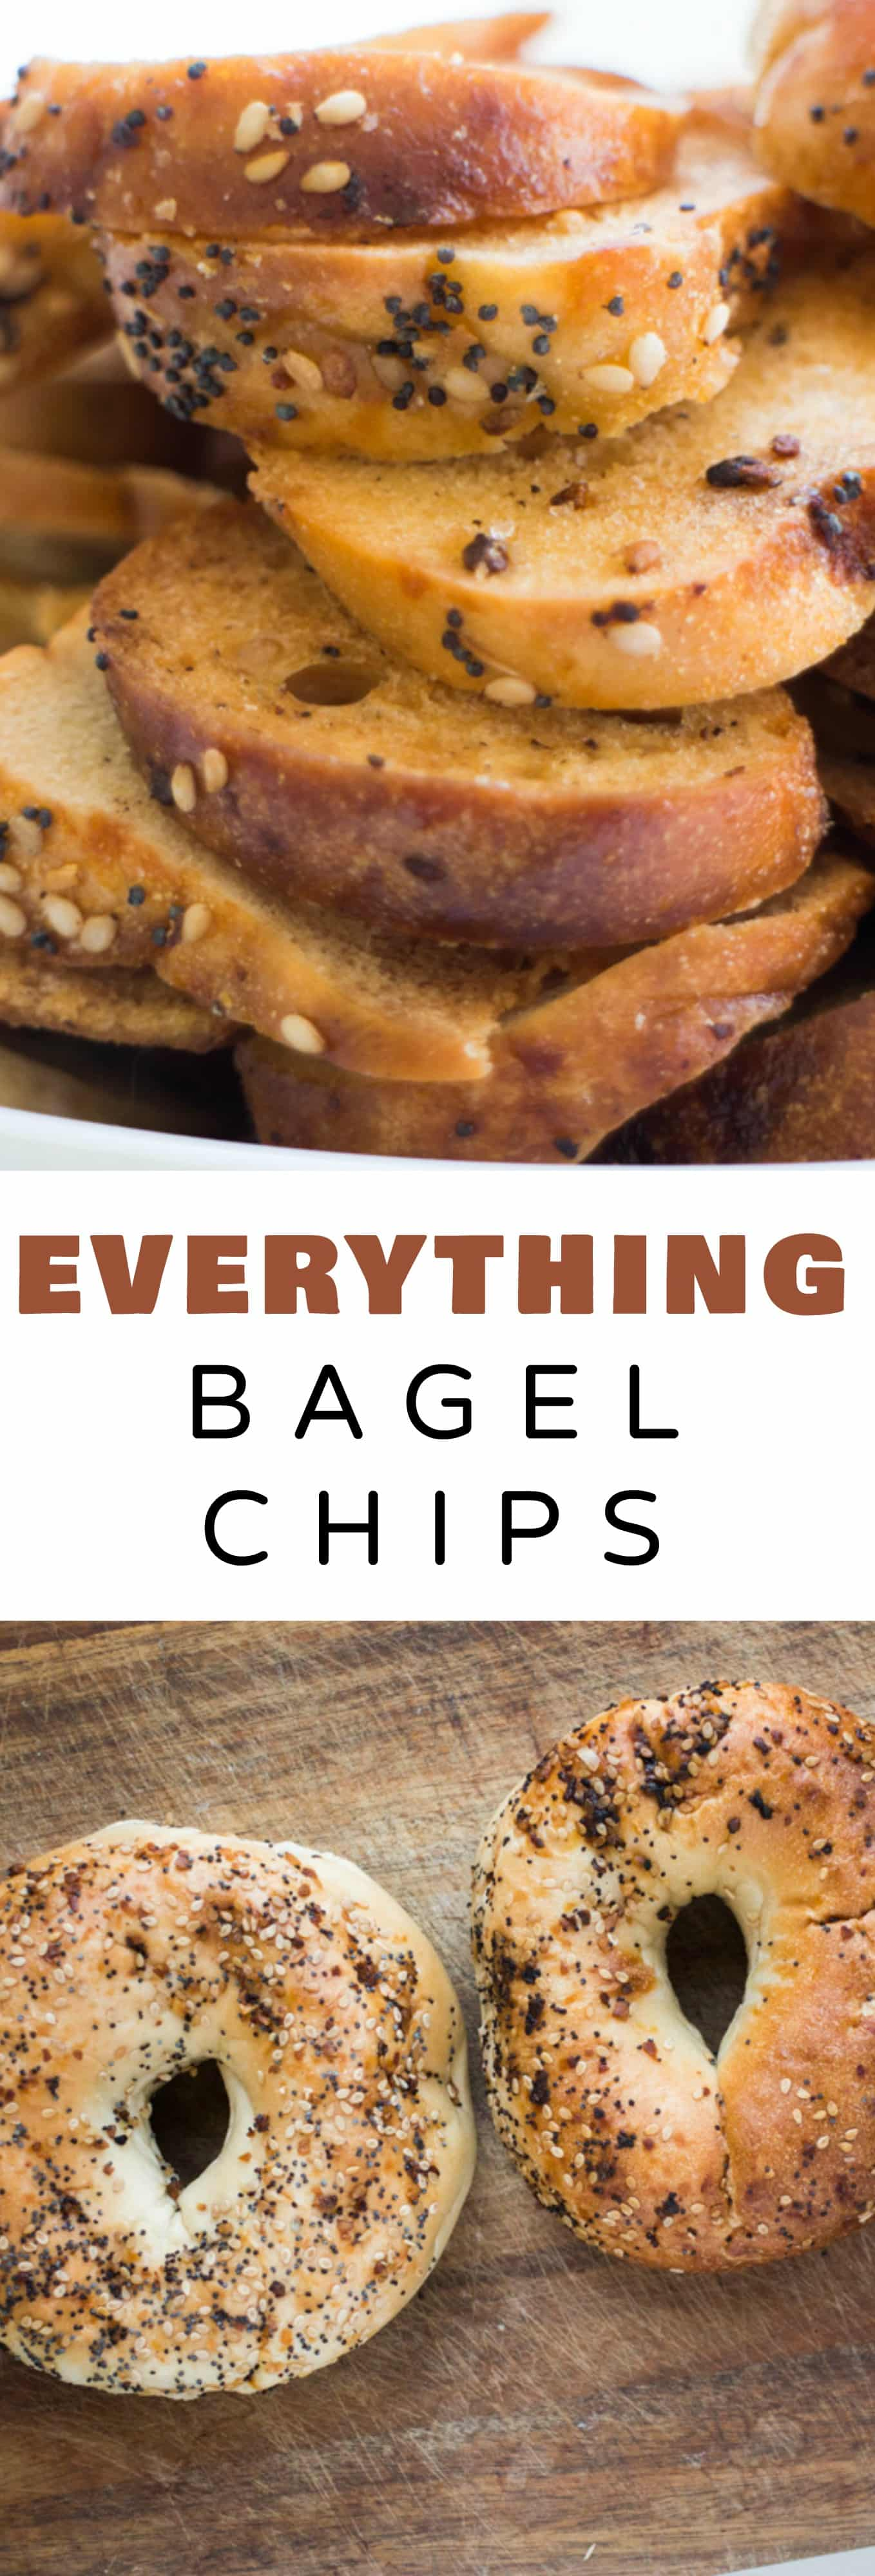 CRUNCHY homemade Everything Bagel Chips! This recipe is easy to make and only requires 3 ingredients! These DIY NYC bagel chips are perfect for snacks and appetizers! Save money and start making your own crispy Bagel Chips!